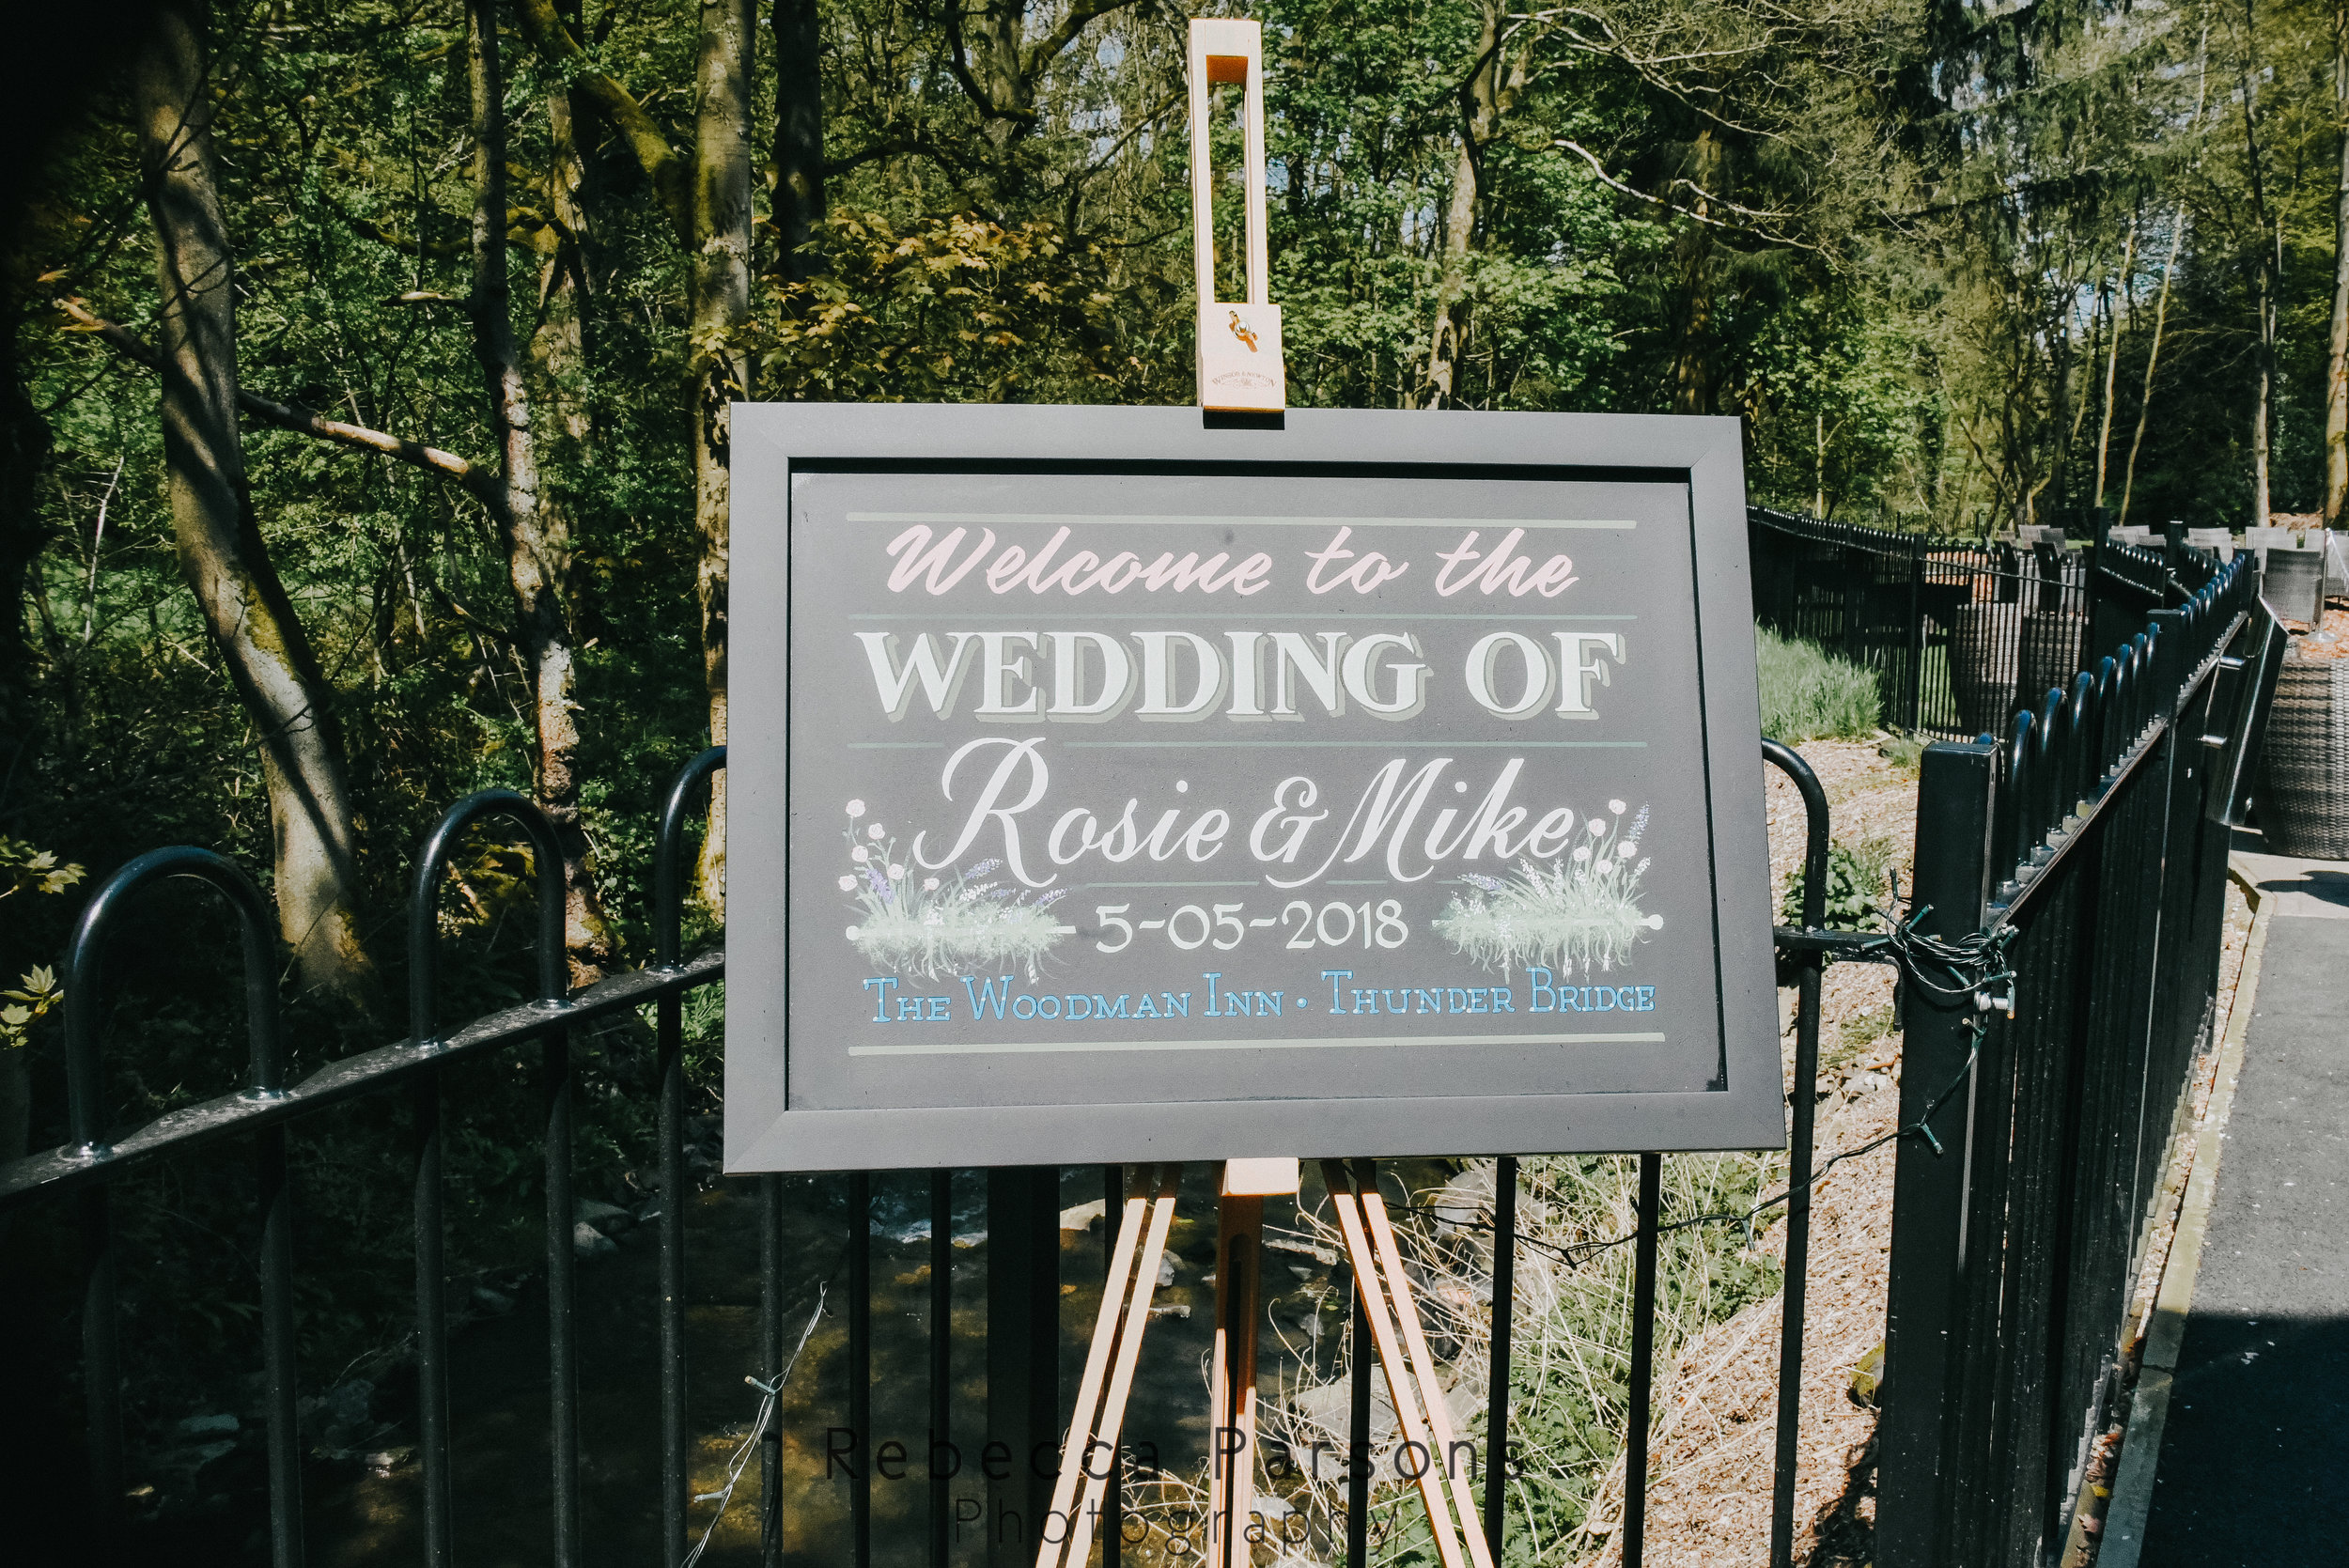 sign for bride and groom's wedding